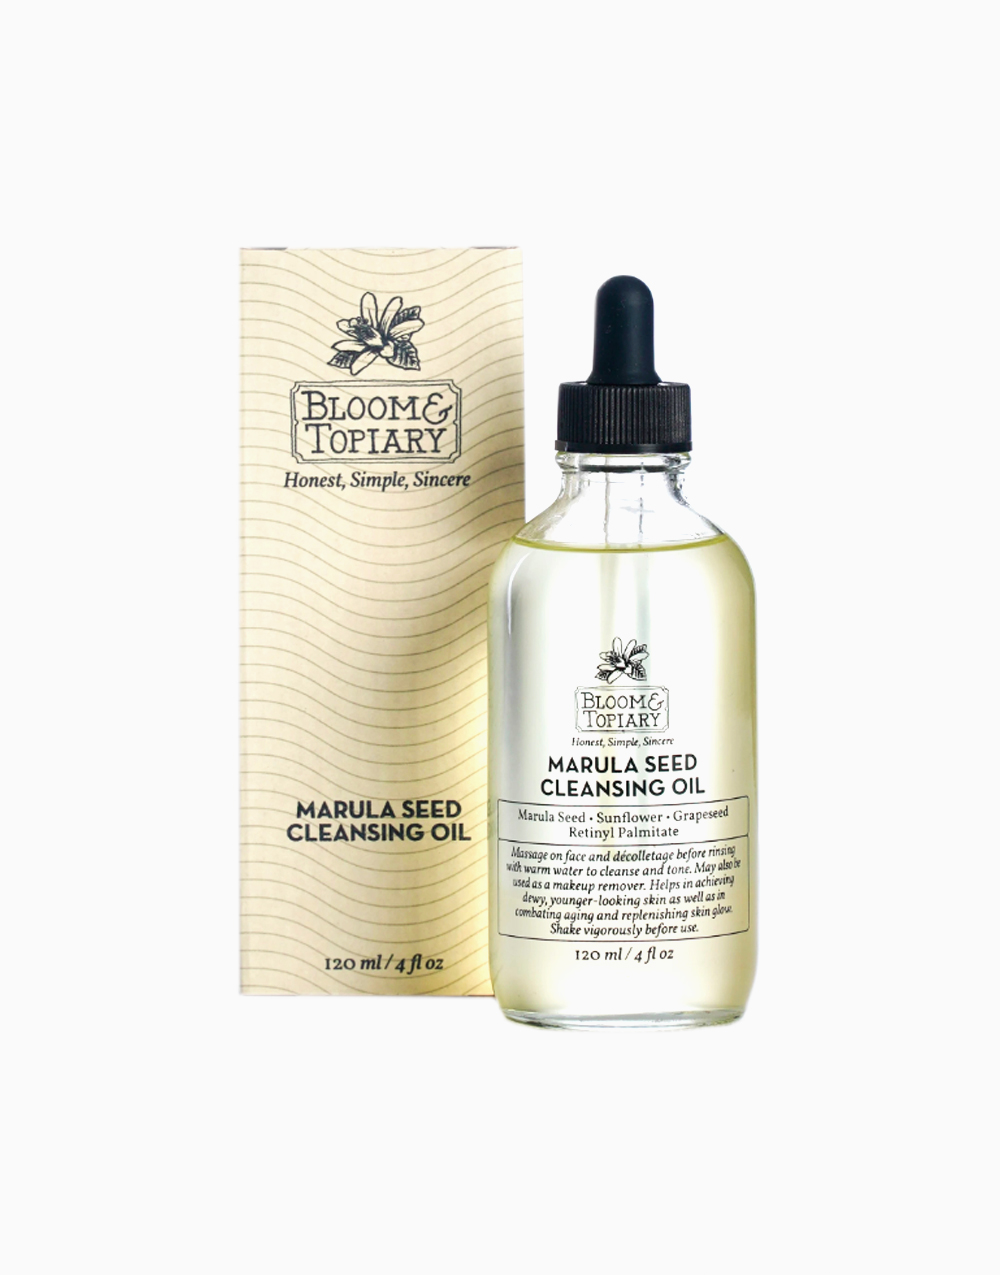 Marula Seed Cleansing Oil by Bloom & Topiary